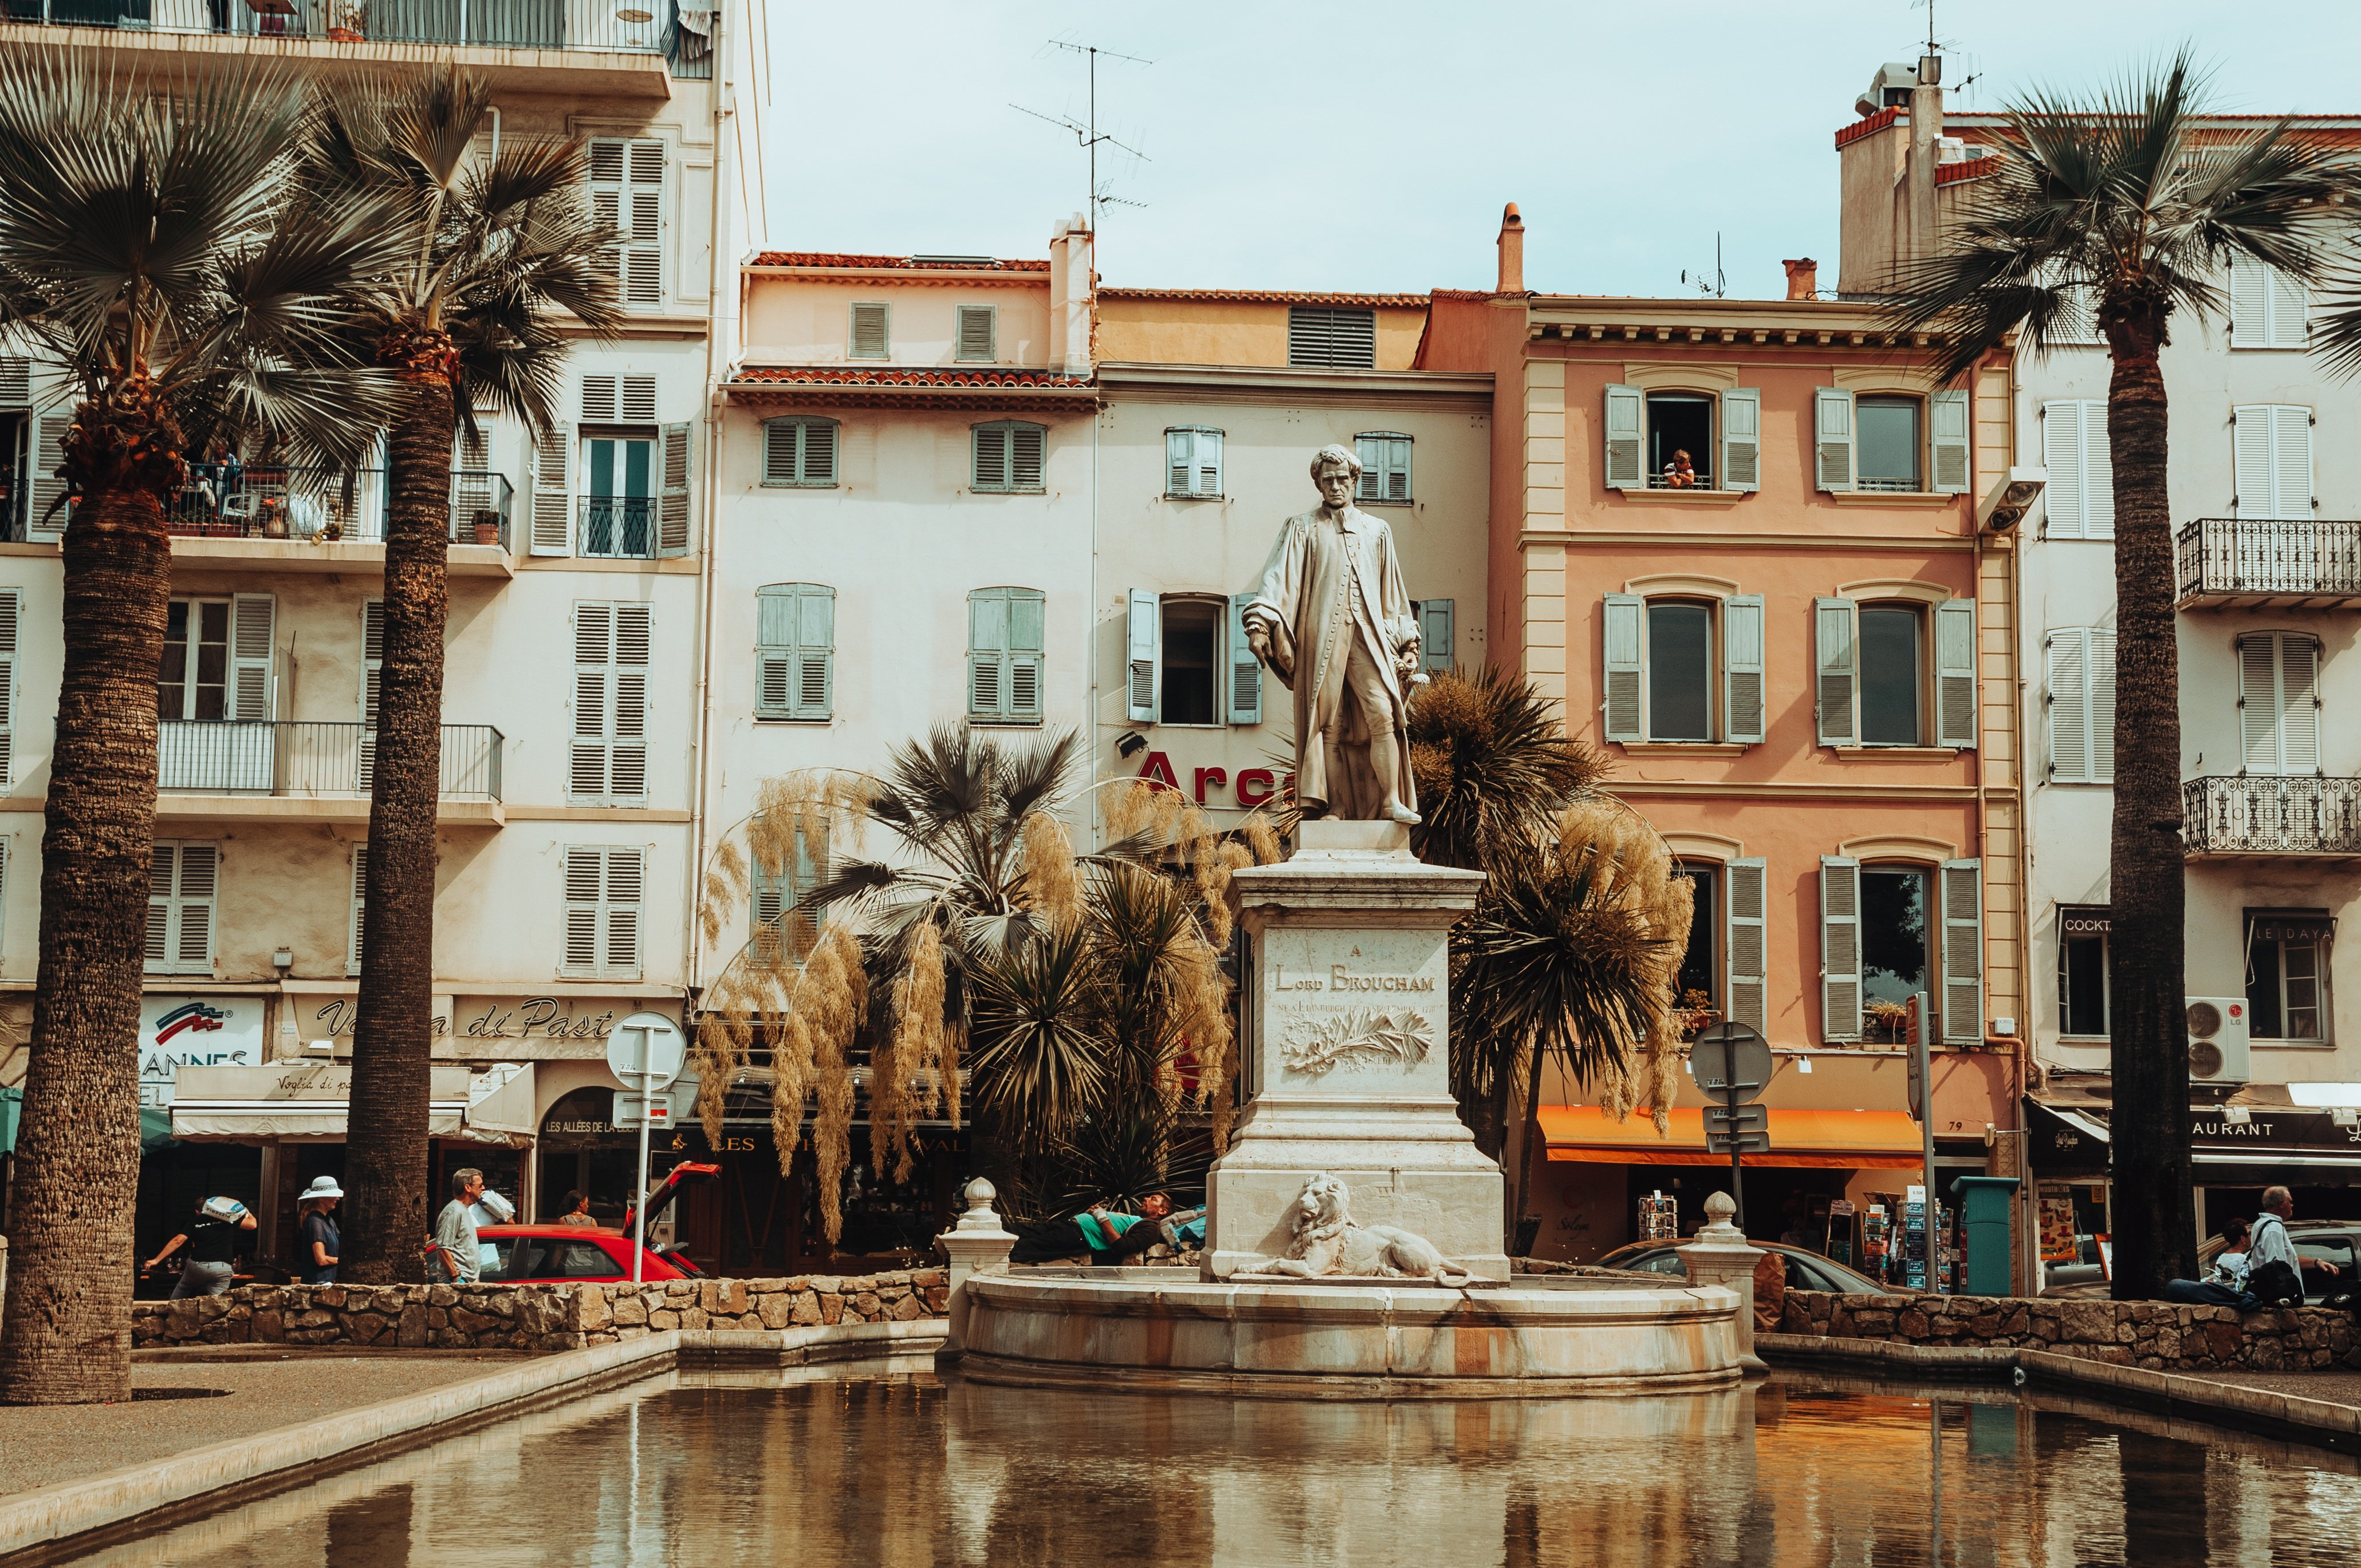 Desktop Wallpapers France Monuments Cannes, Lord Brougham Pond Palms Cities palm trees